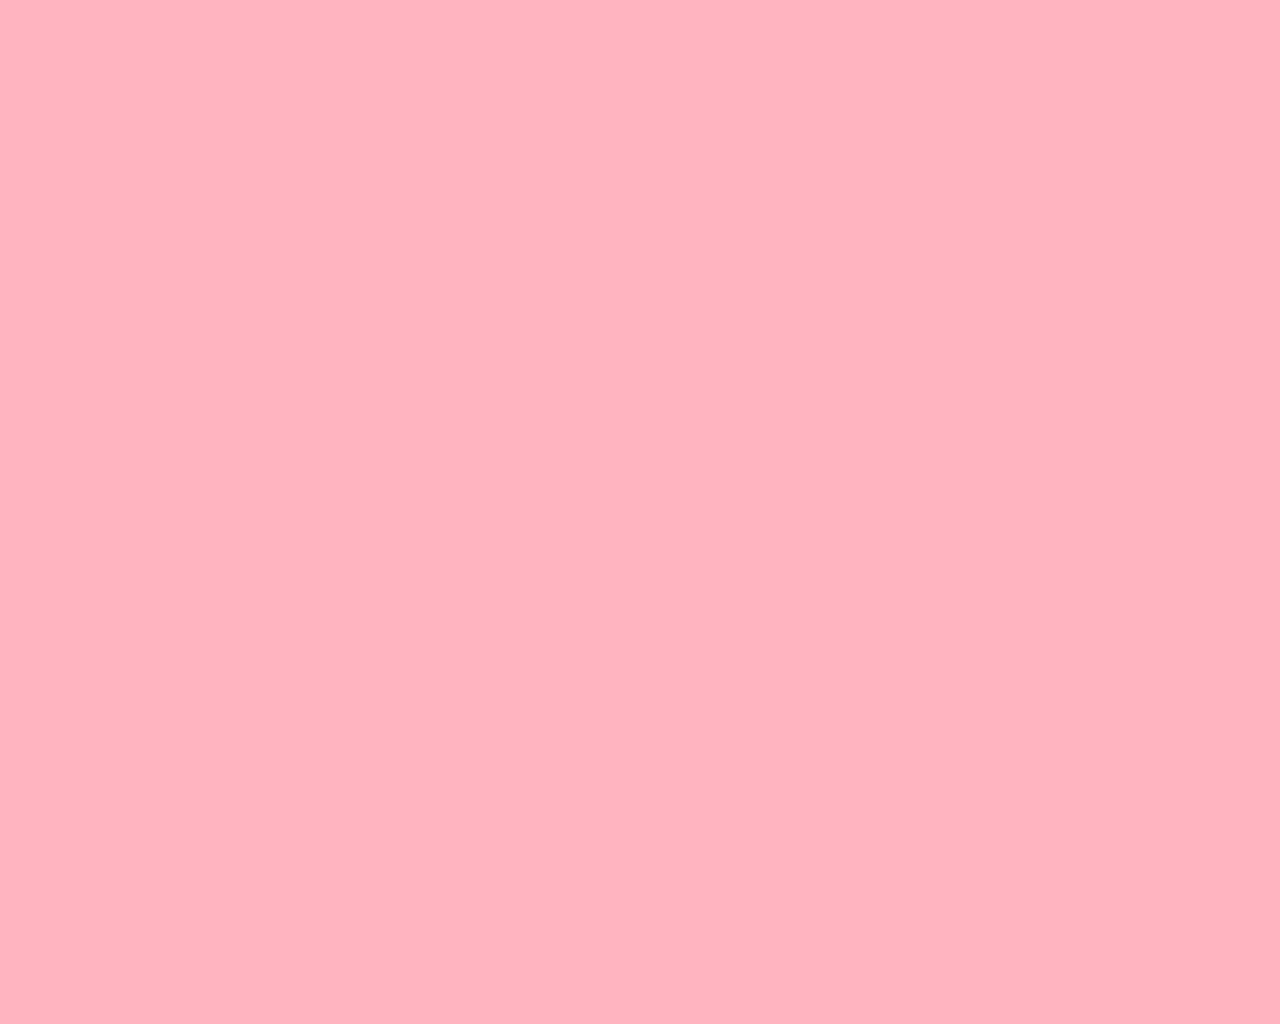 1280x1024 light pink solid color background